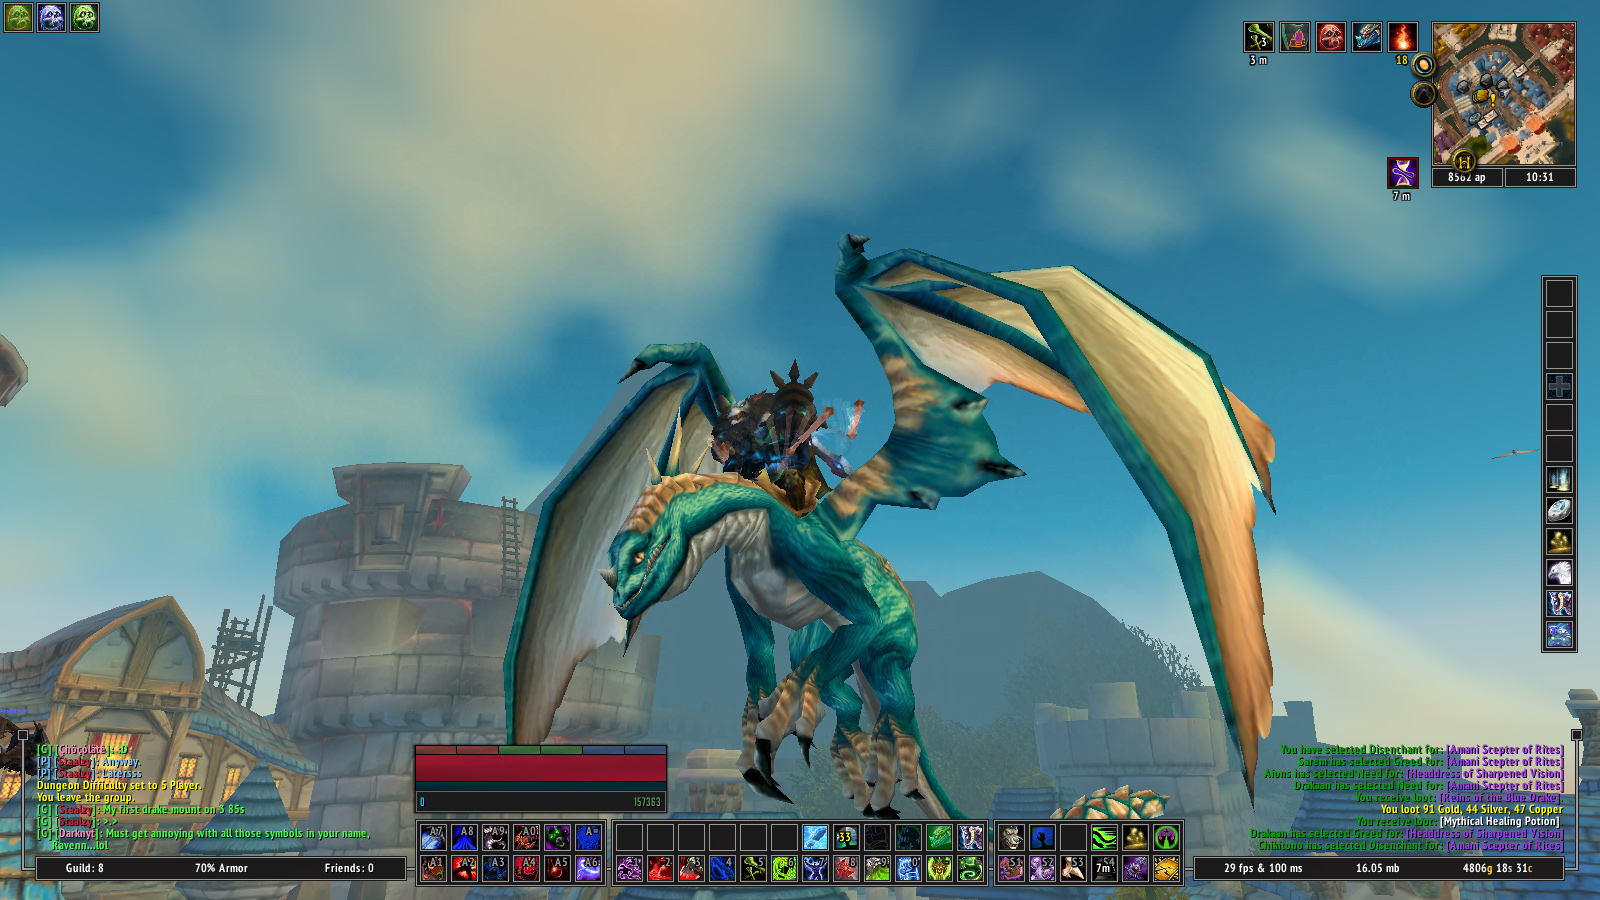 badkarma games this first continue mount reputation grind completed that today dropped when pairs acquisition achievement hopped about forgot accomplishment thread completely over bought picked recent different drake missing netherwing